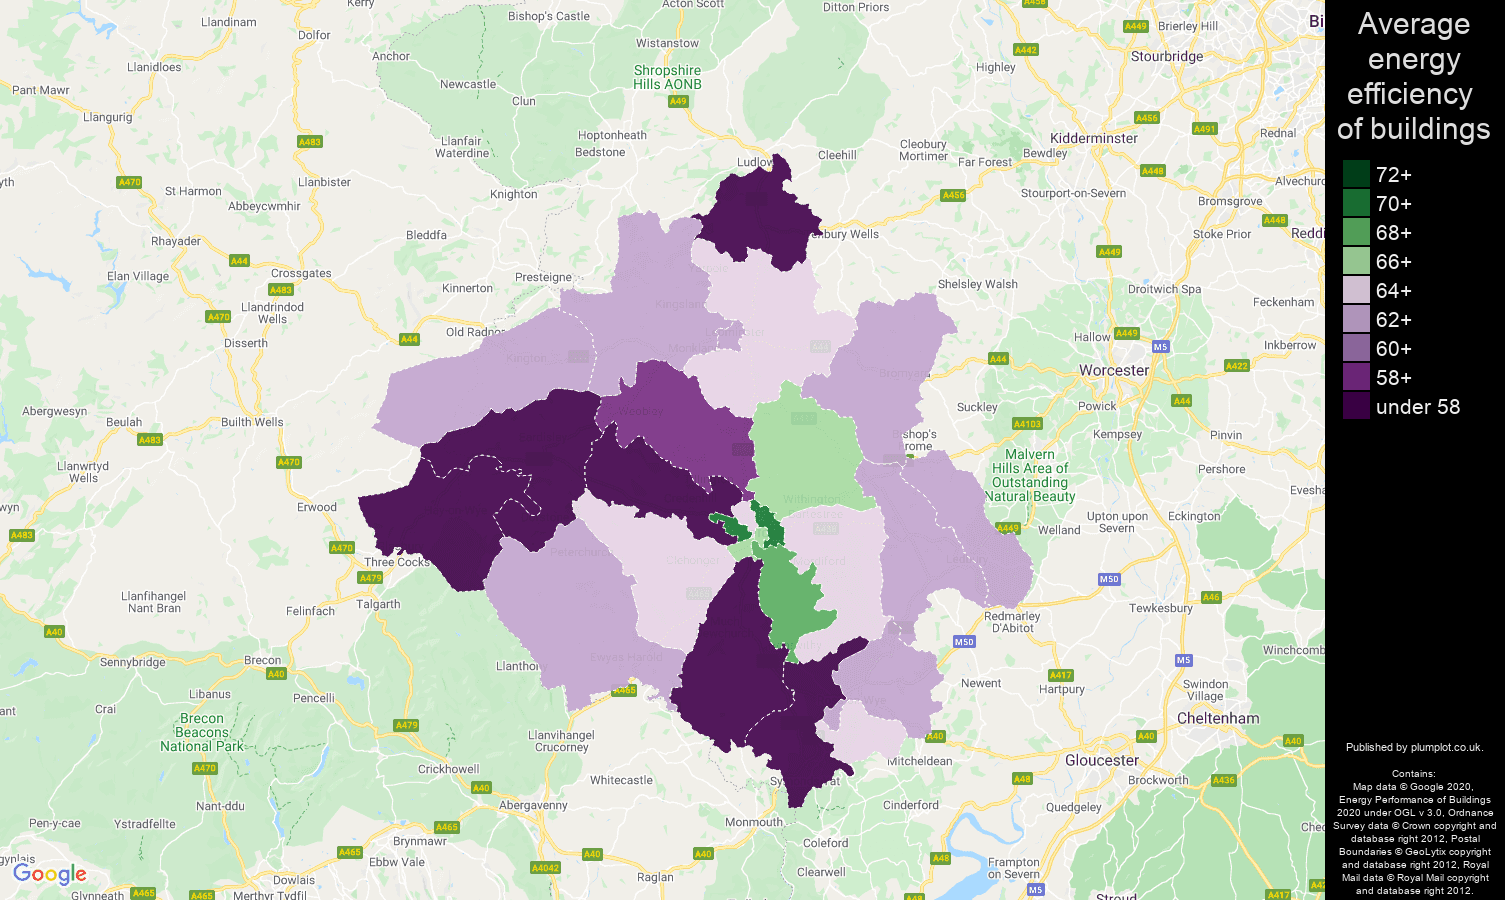 Herefordshire map of energy efficiency of flats